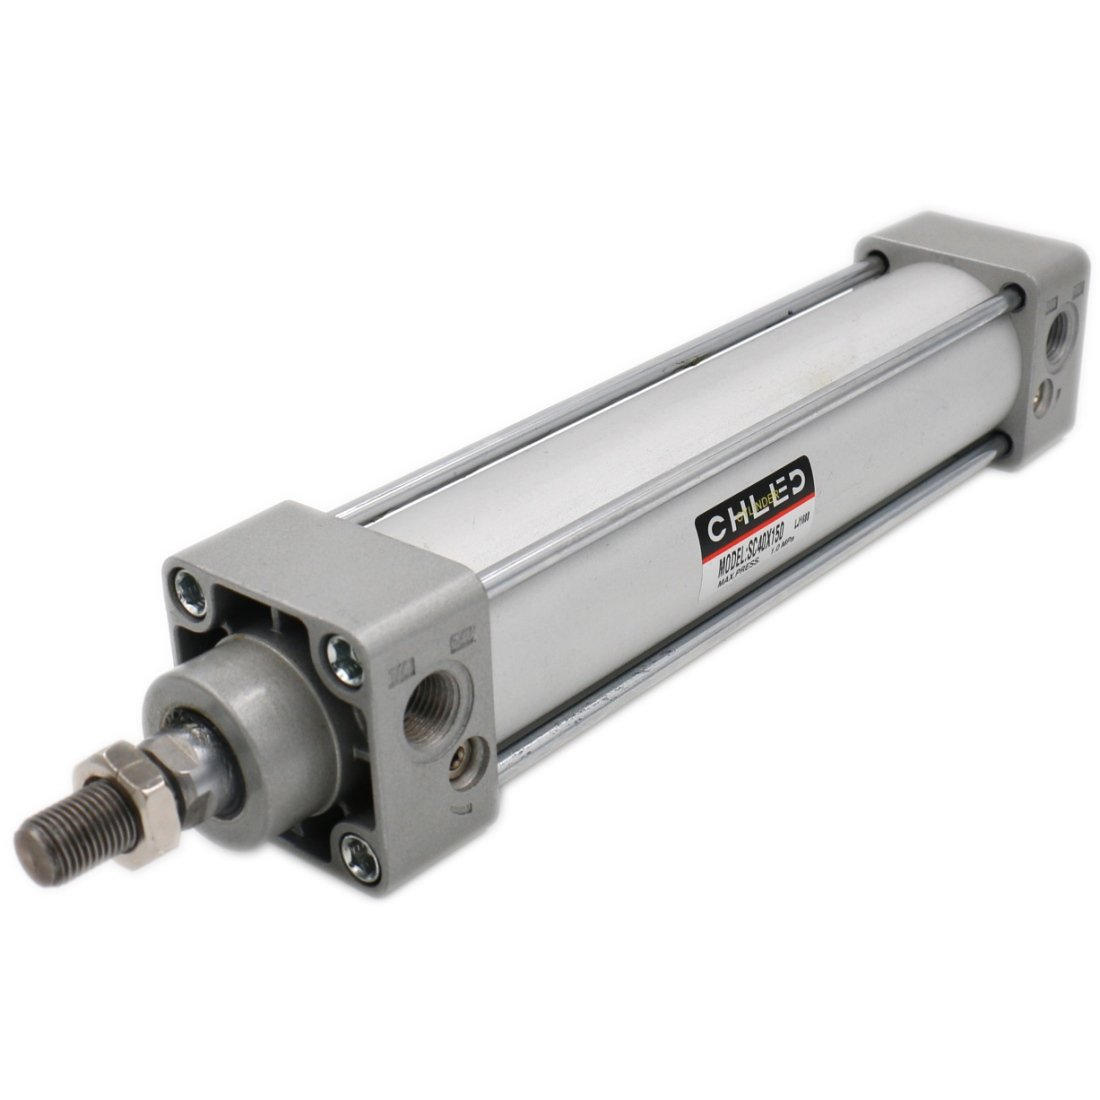 Heschen pneumatique Standard Cylindre SC 40– 150  PT1/4  Ports 40  mm Bore 150  mm Stroke Double Action CHLED Pneumatic